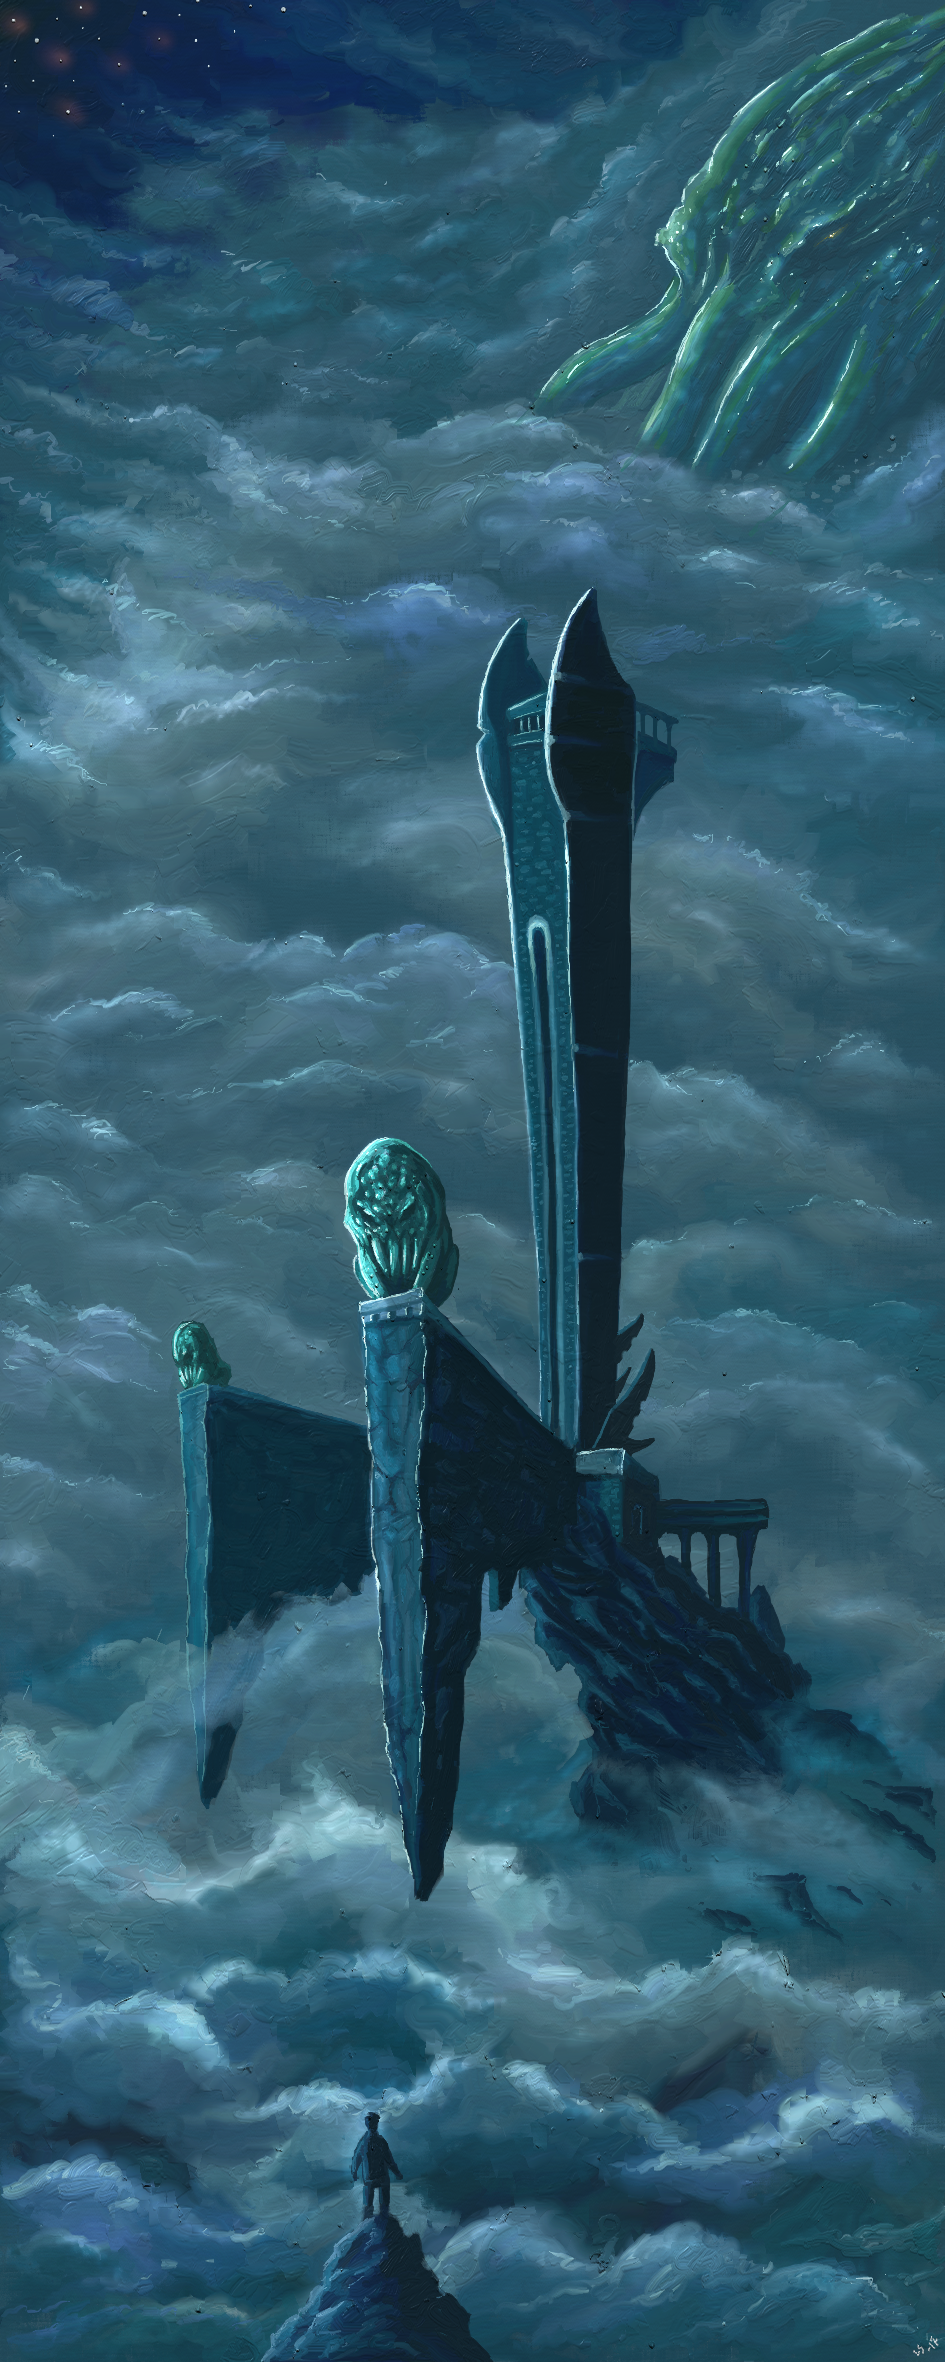 Tower of the Dreamer